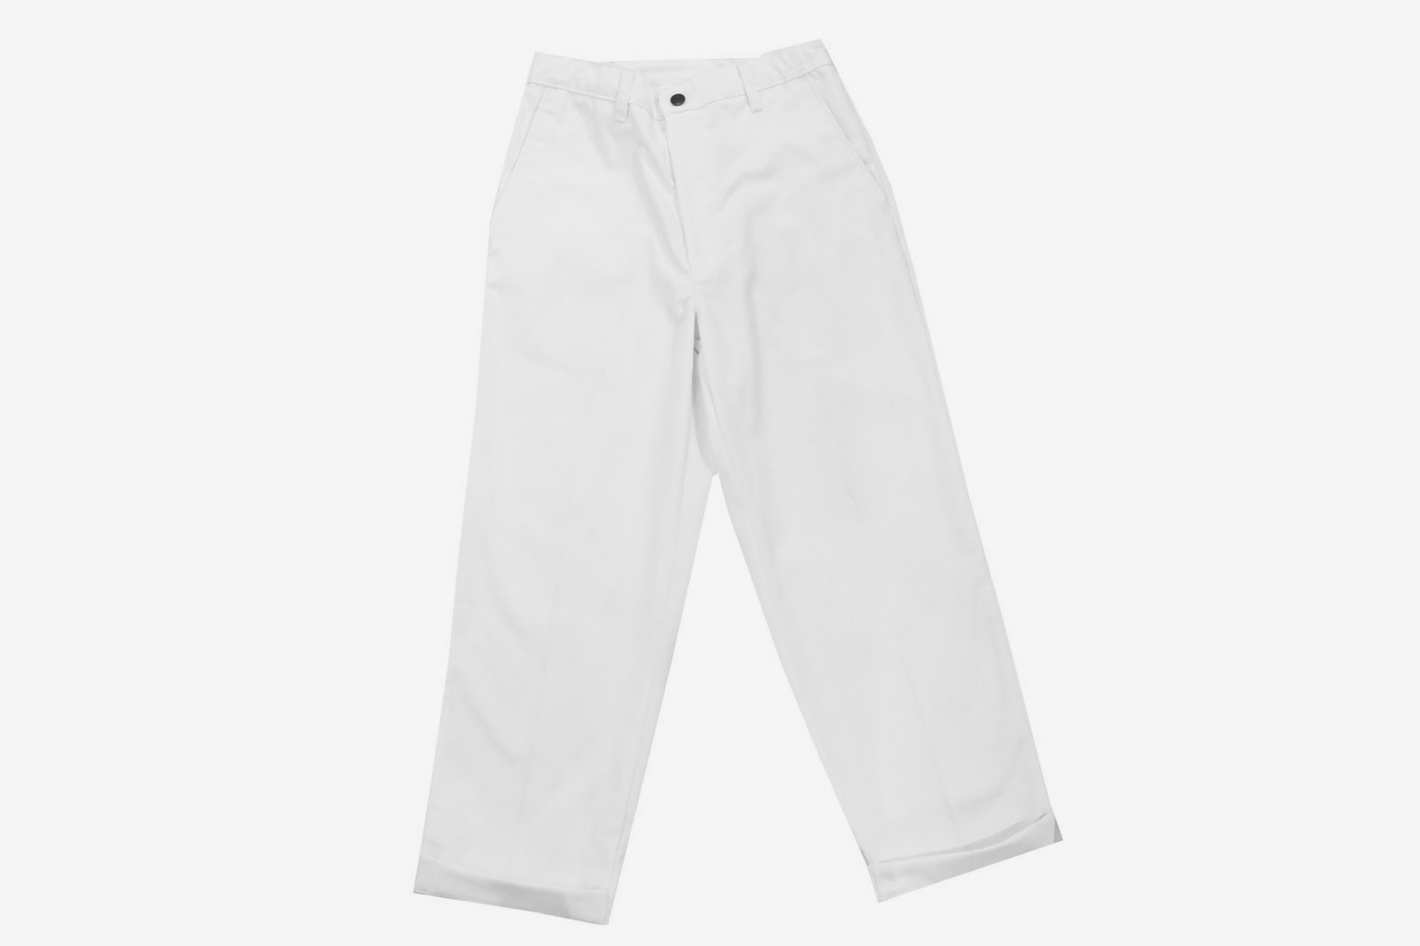 Peels Painting Embroidered Work Pants White